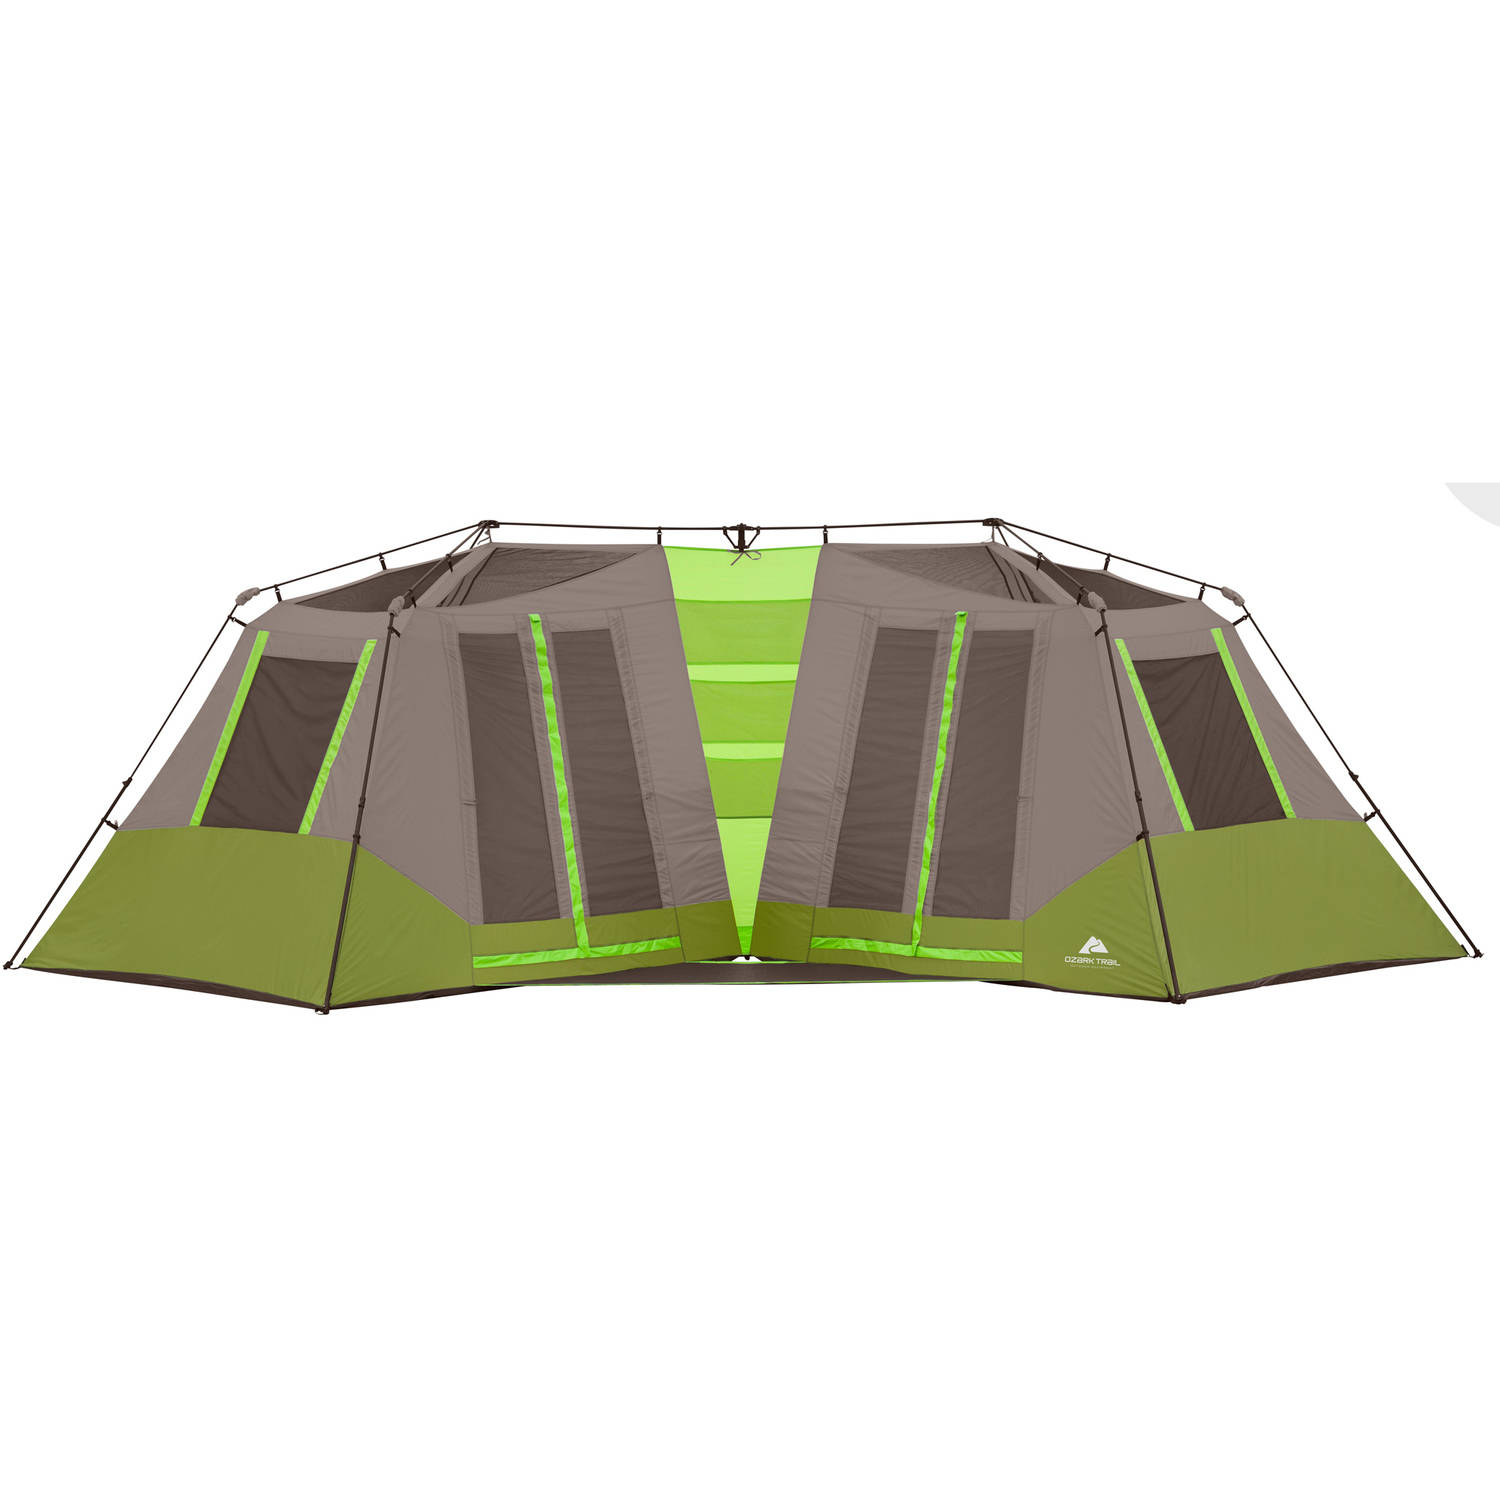 Ozark Trail 8 Person Instant Double Villa Cabin Tent Ebay